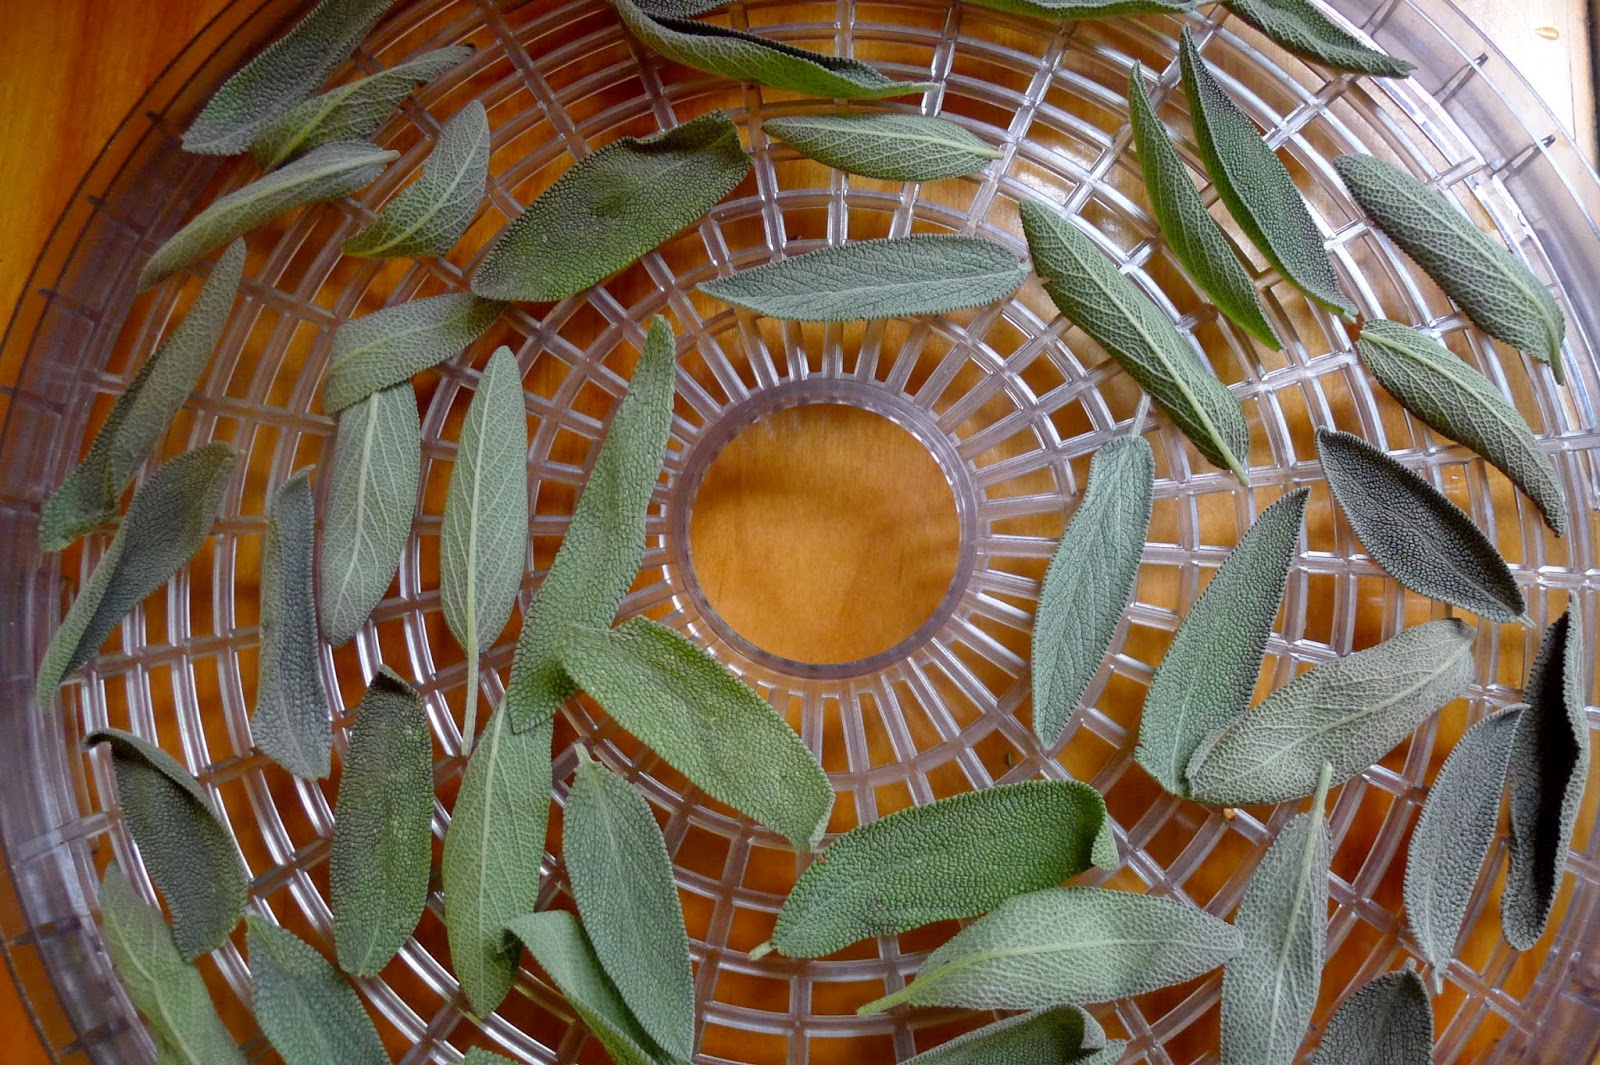 dehydrating Sage, preserving herbs